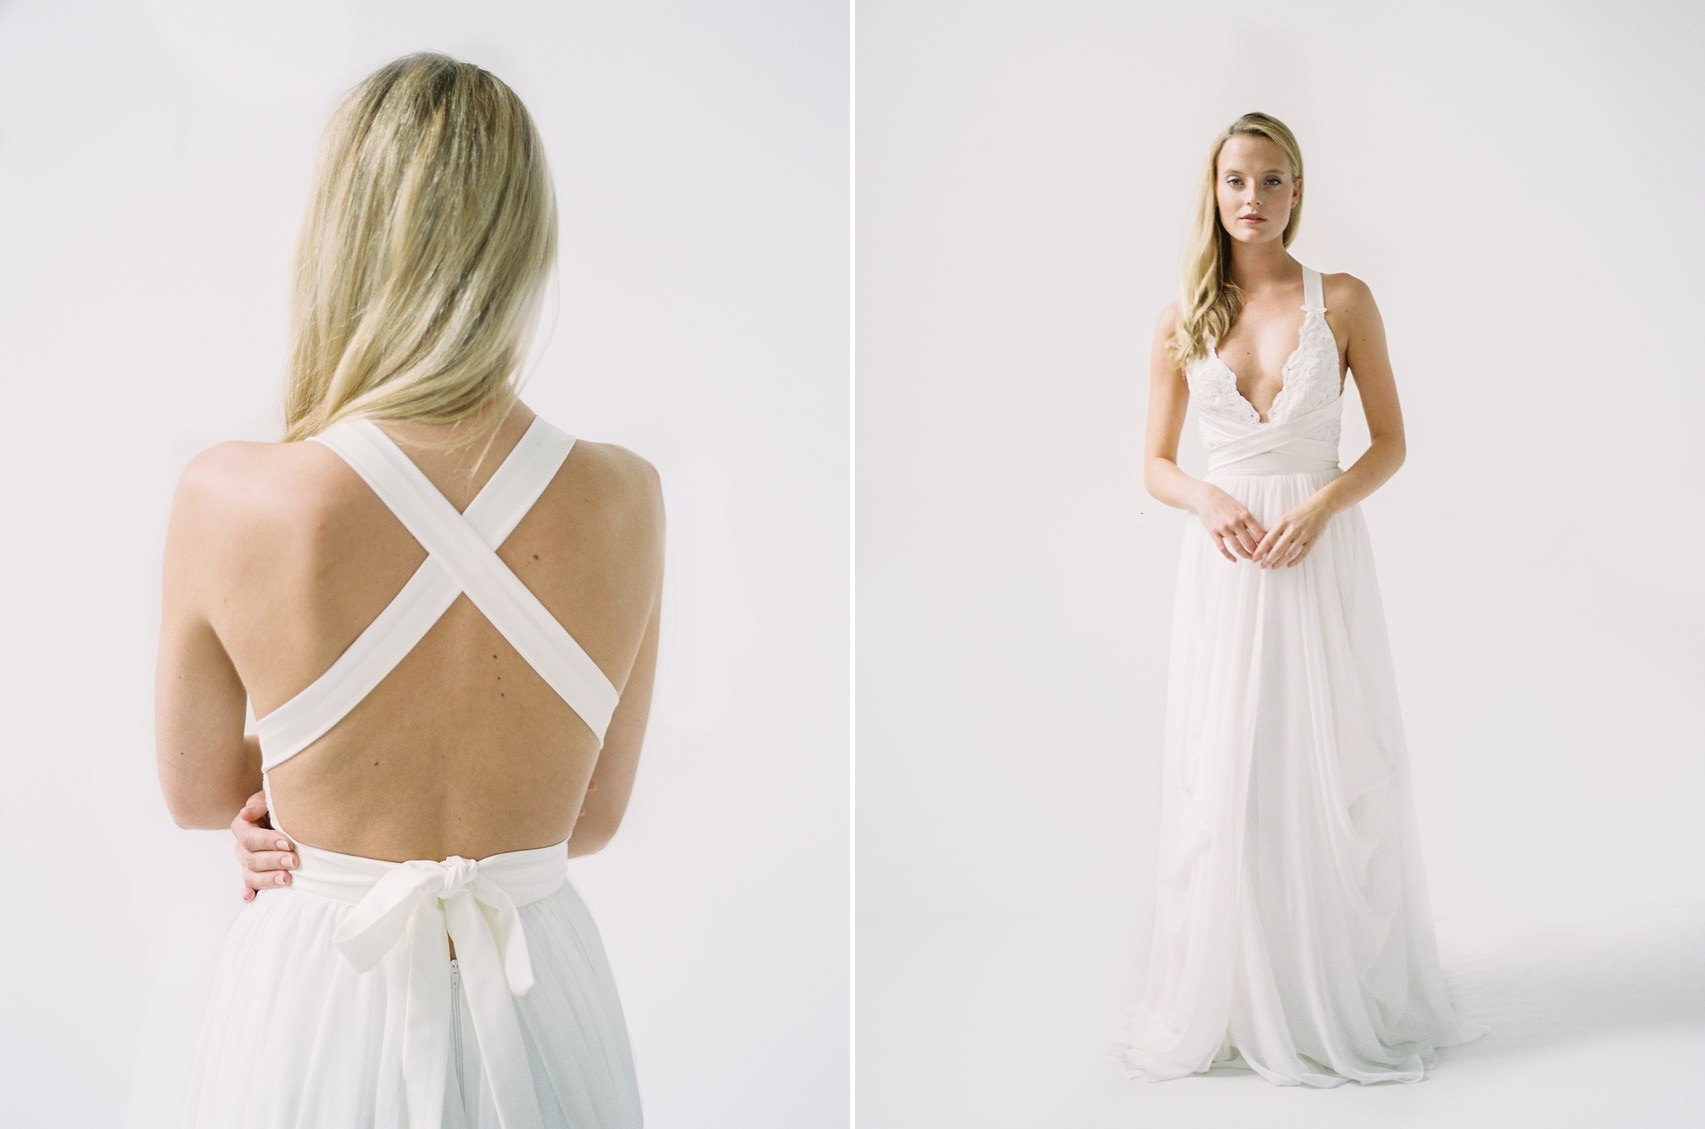 Rebecca Wedding Dress from Truvelle